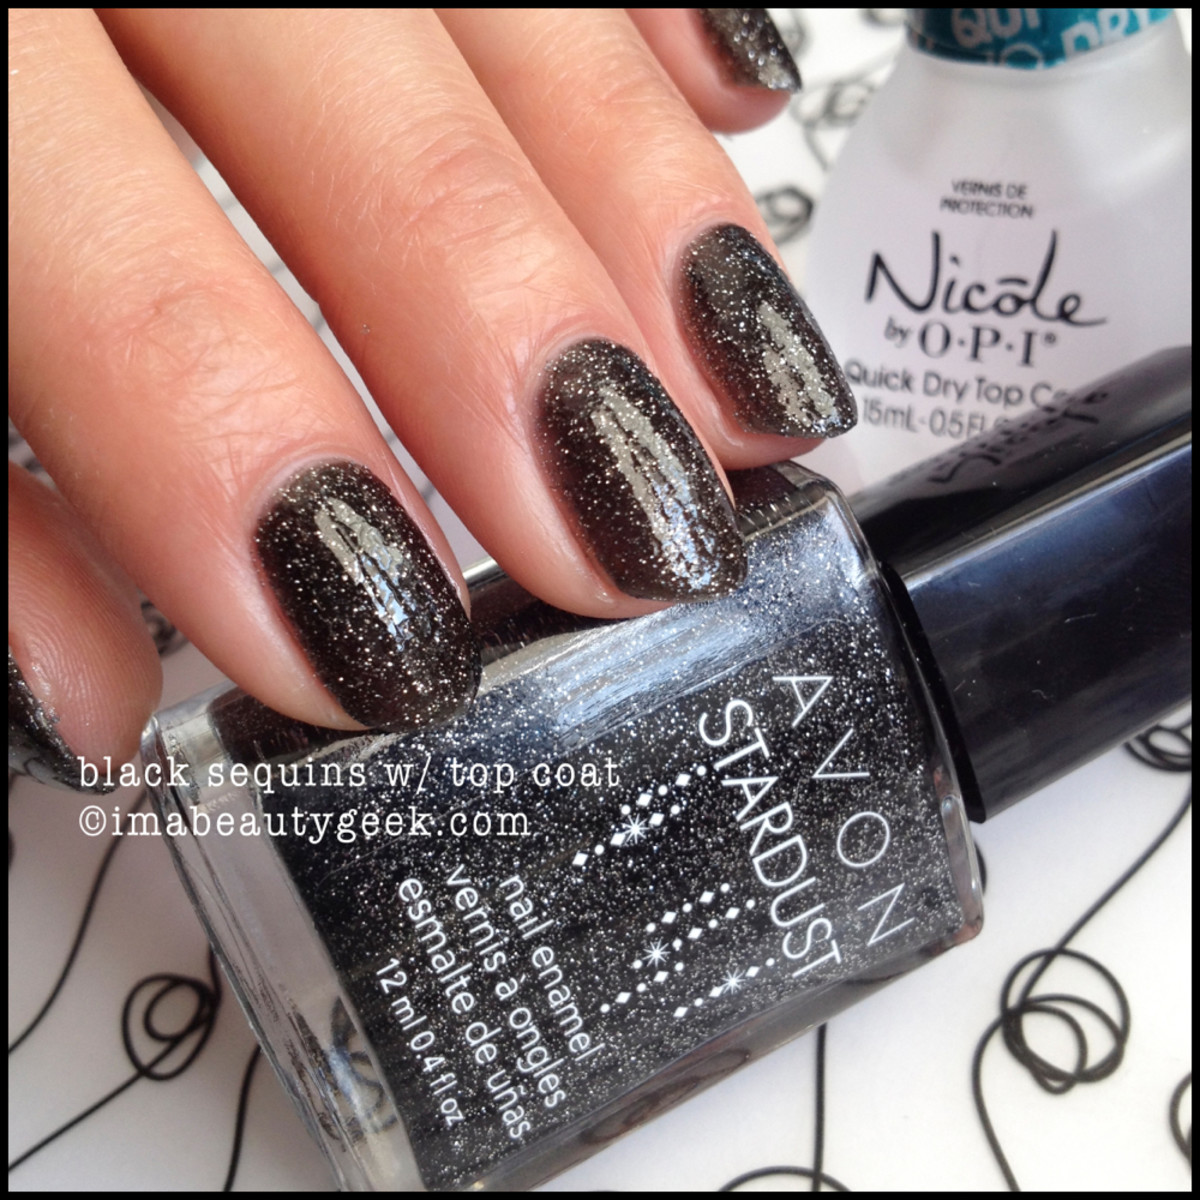 Avon pollish Stardust Black Sequins Fall 2014